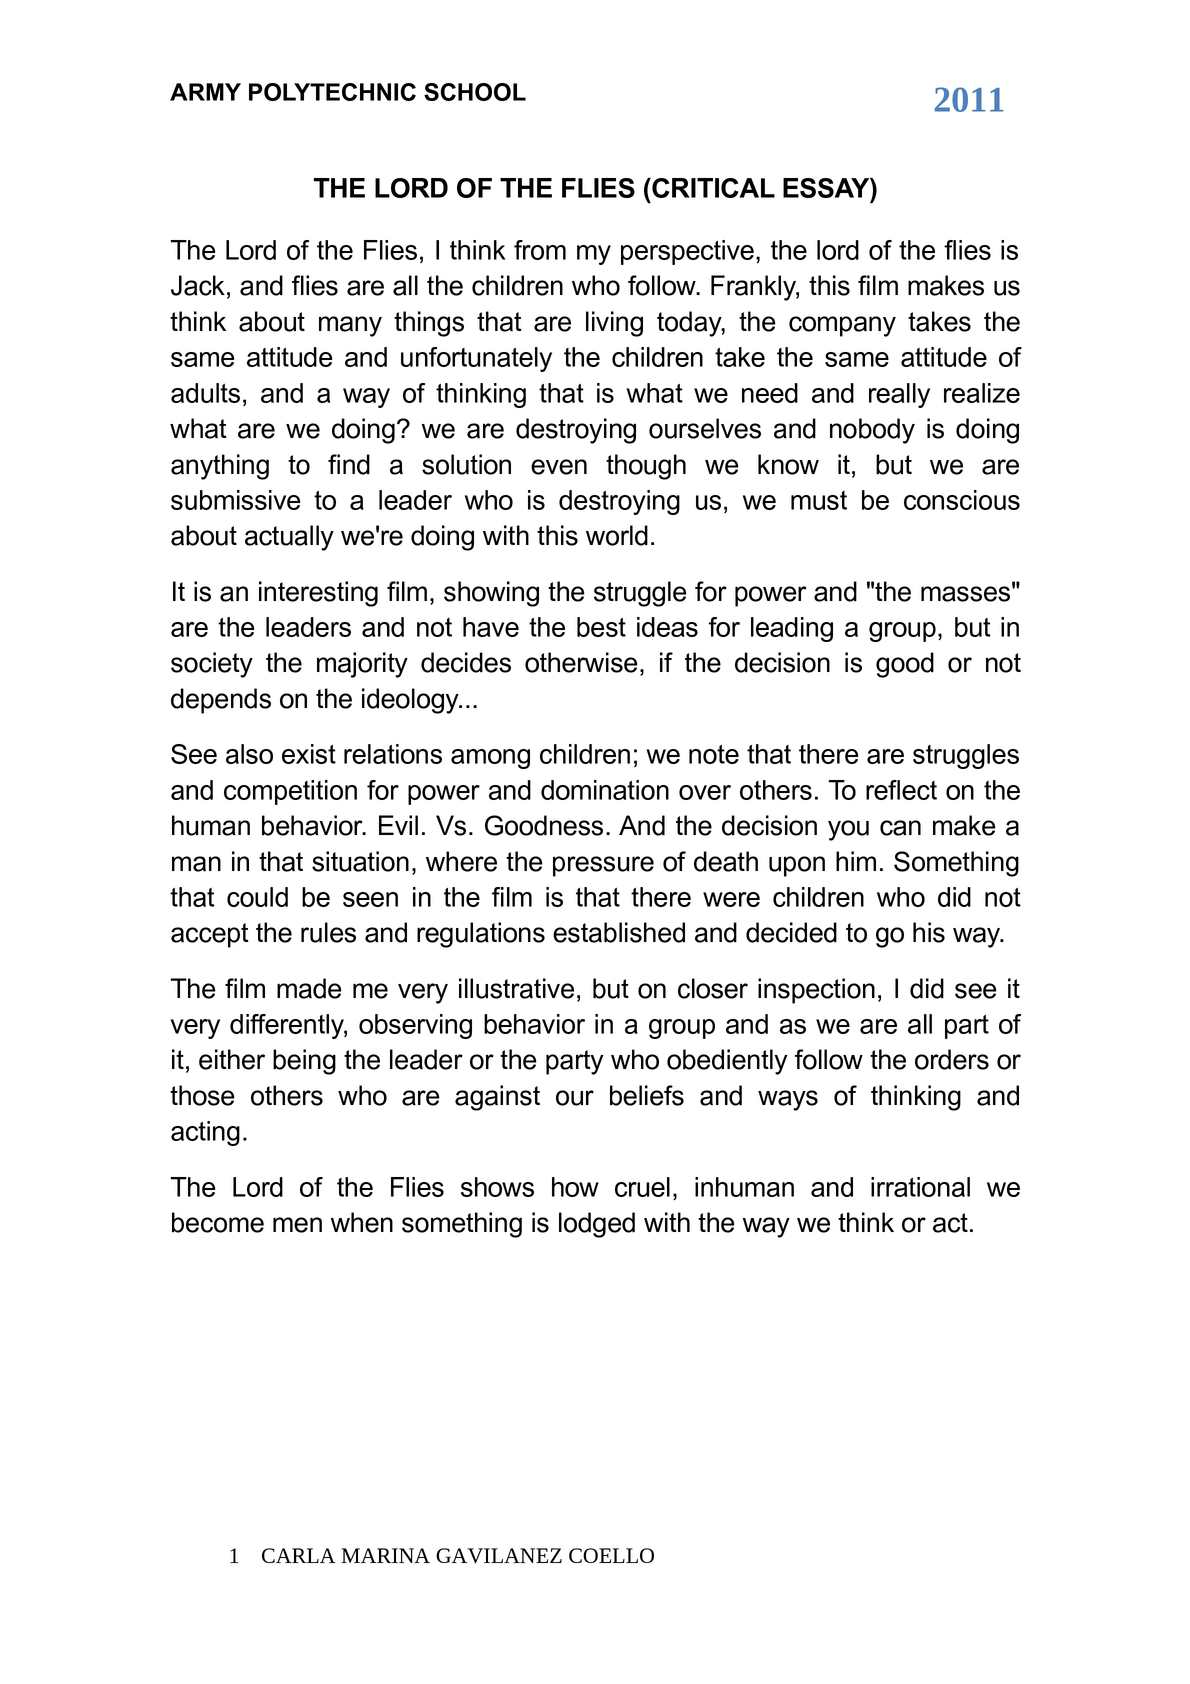 lord of the flies fear essay lord of the flies grade academic  lord of the flies power essay calamatilde131acirccopyo the lord of the flies critical essay